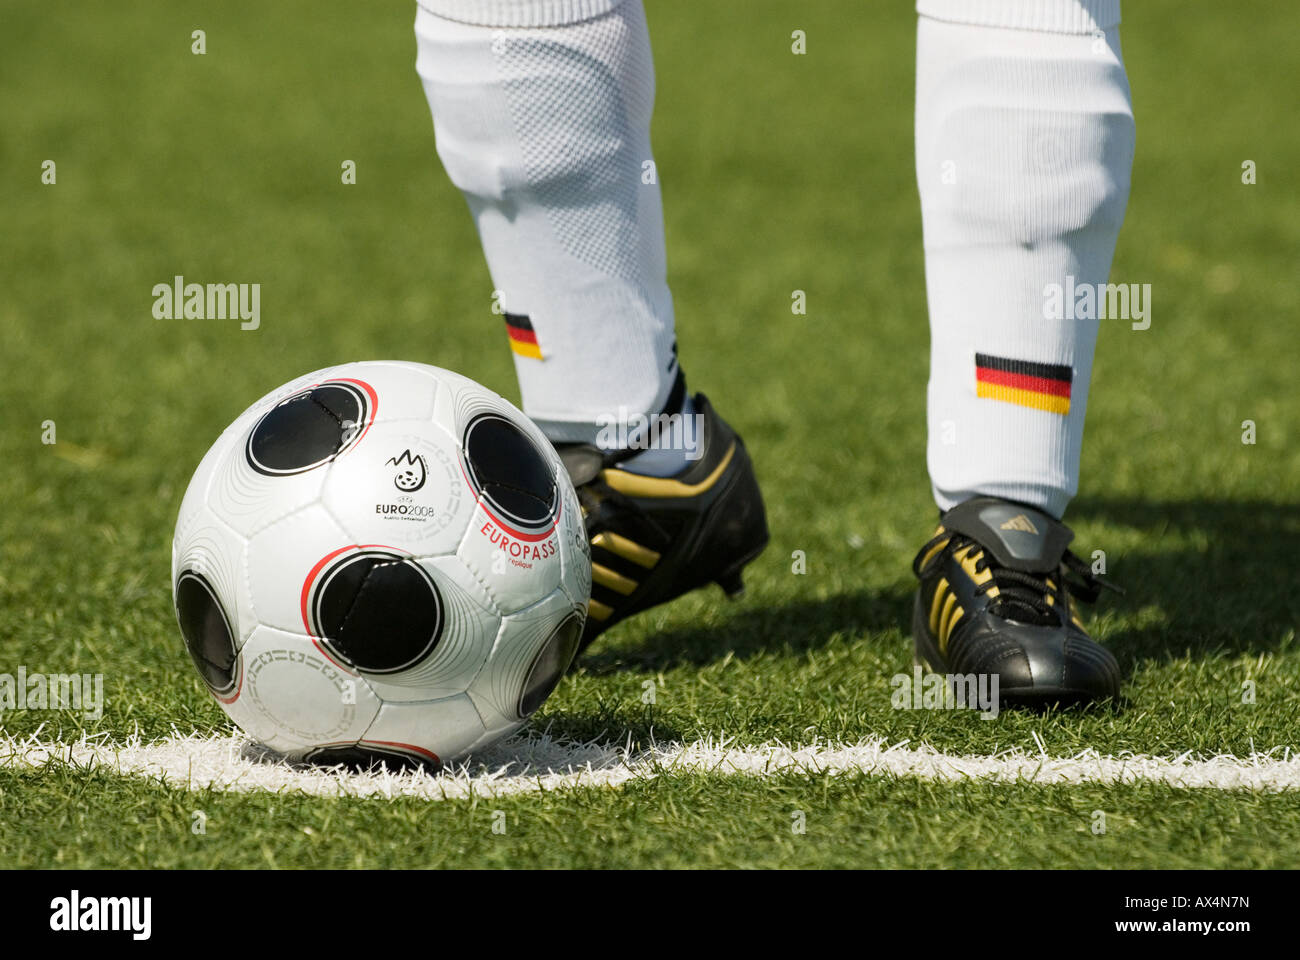 feet of a german national football player stand by a copy of EUROPASS,official matchball of the European football - Stock Image